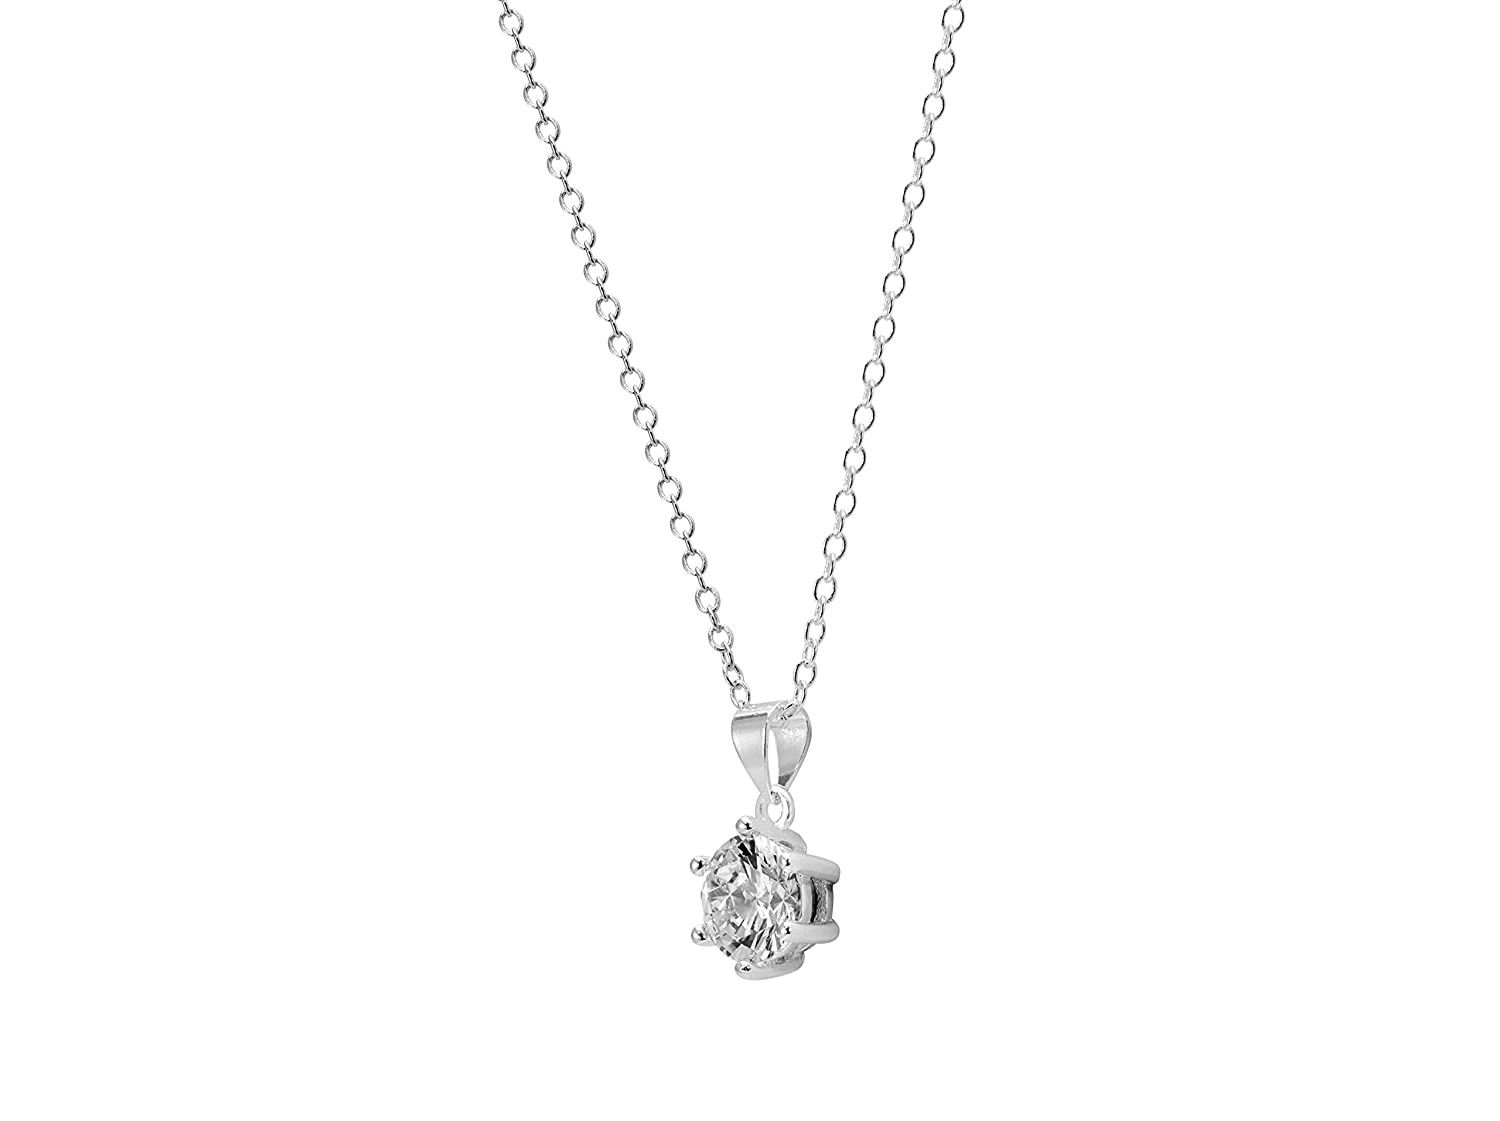 Abigail at the Winter Dance,Silver-Plated,2Kt Pendant,Round-Cut Cubic Zirconia,Six-Point Ashlynn Avenue